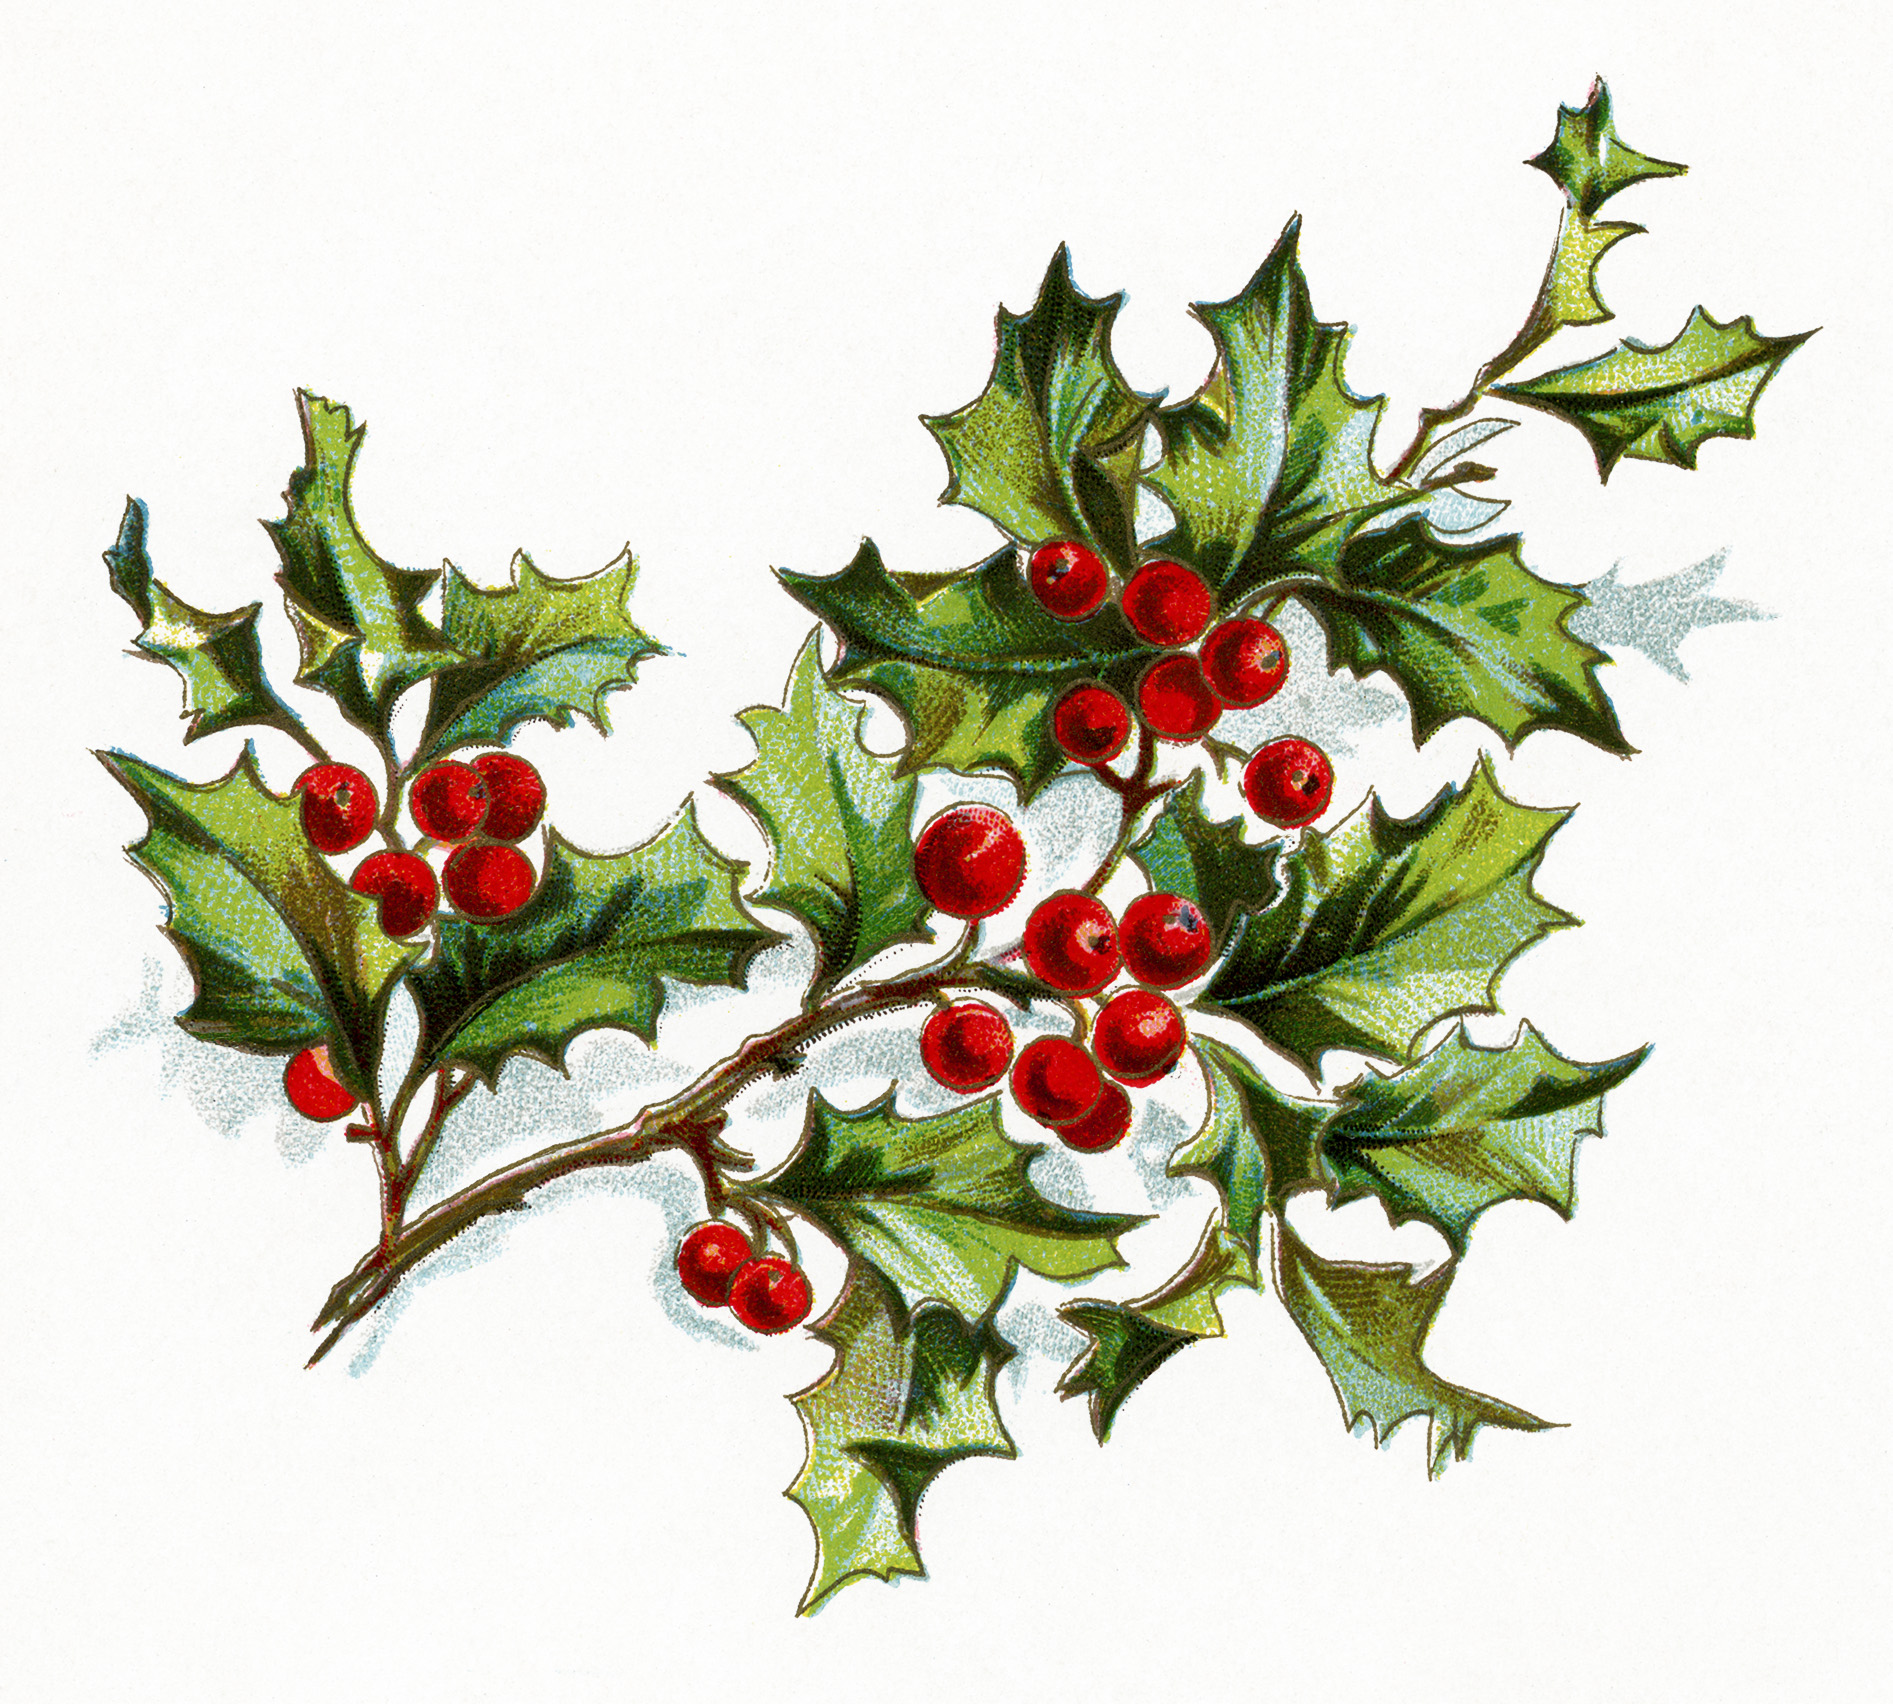 1893x1704 Free Vintage Image Holly And Berries Old Design Shop Blog